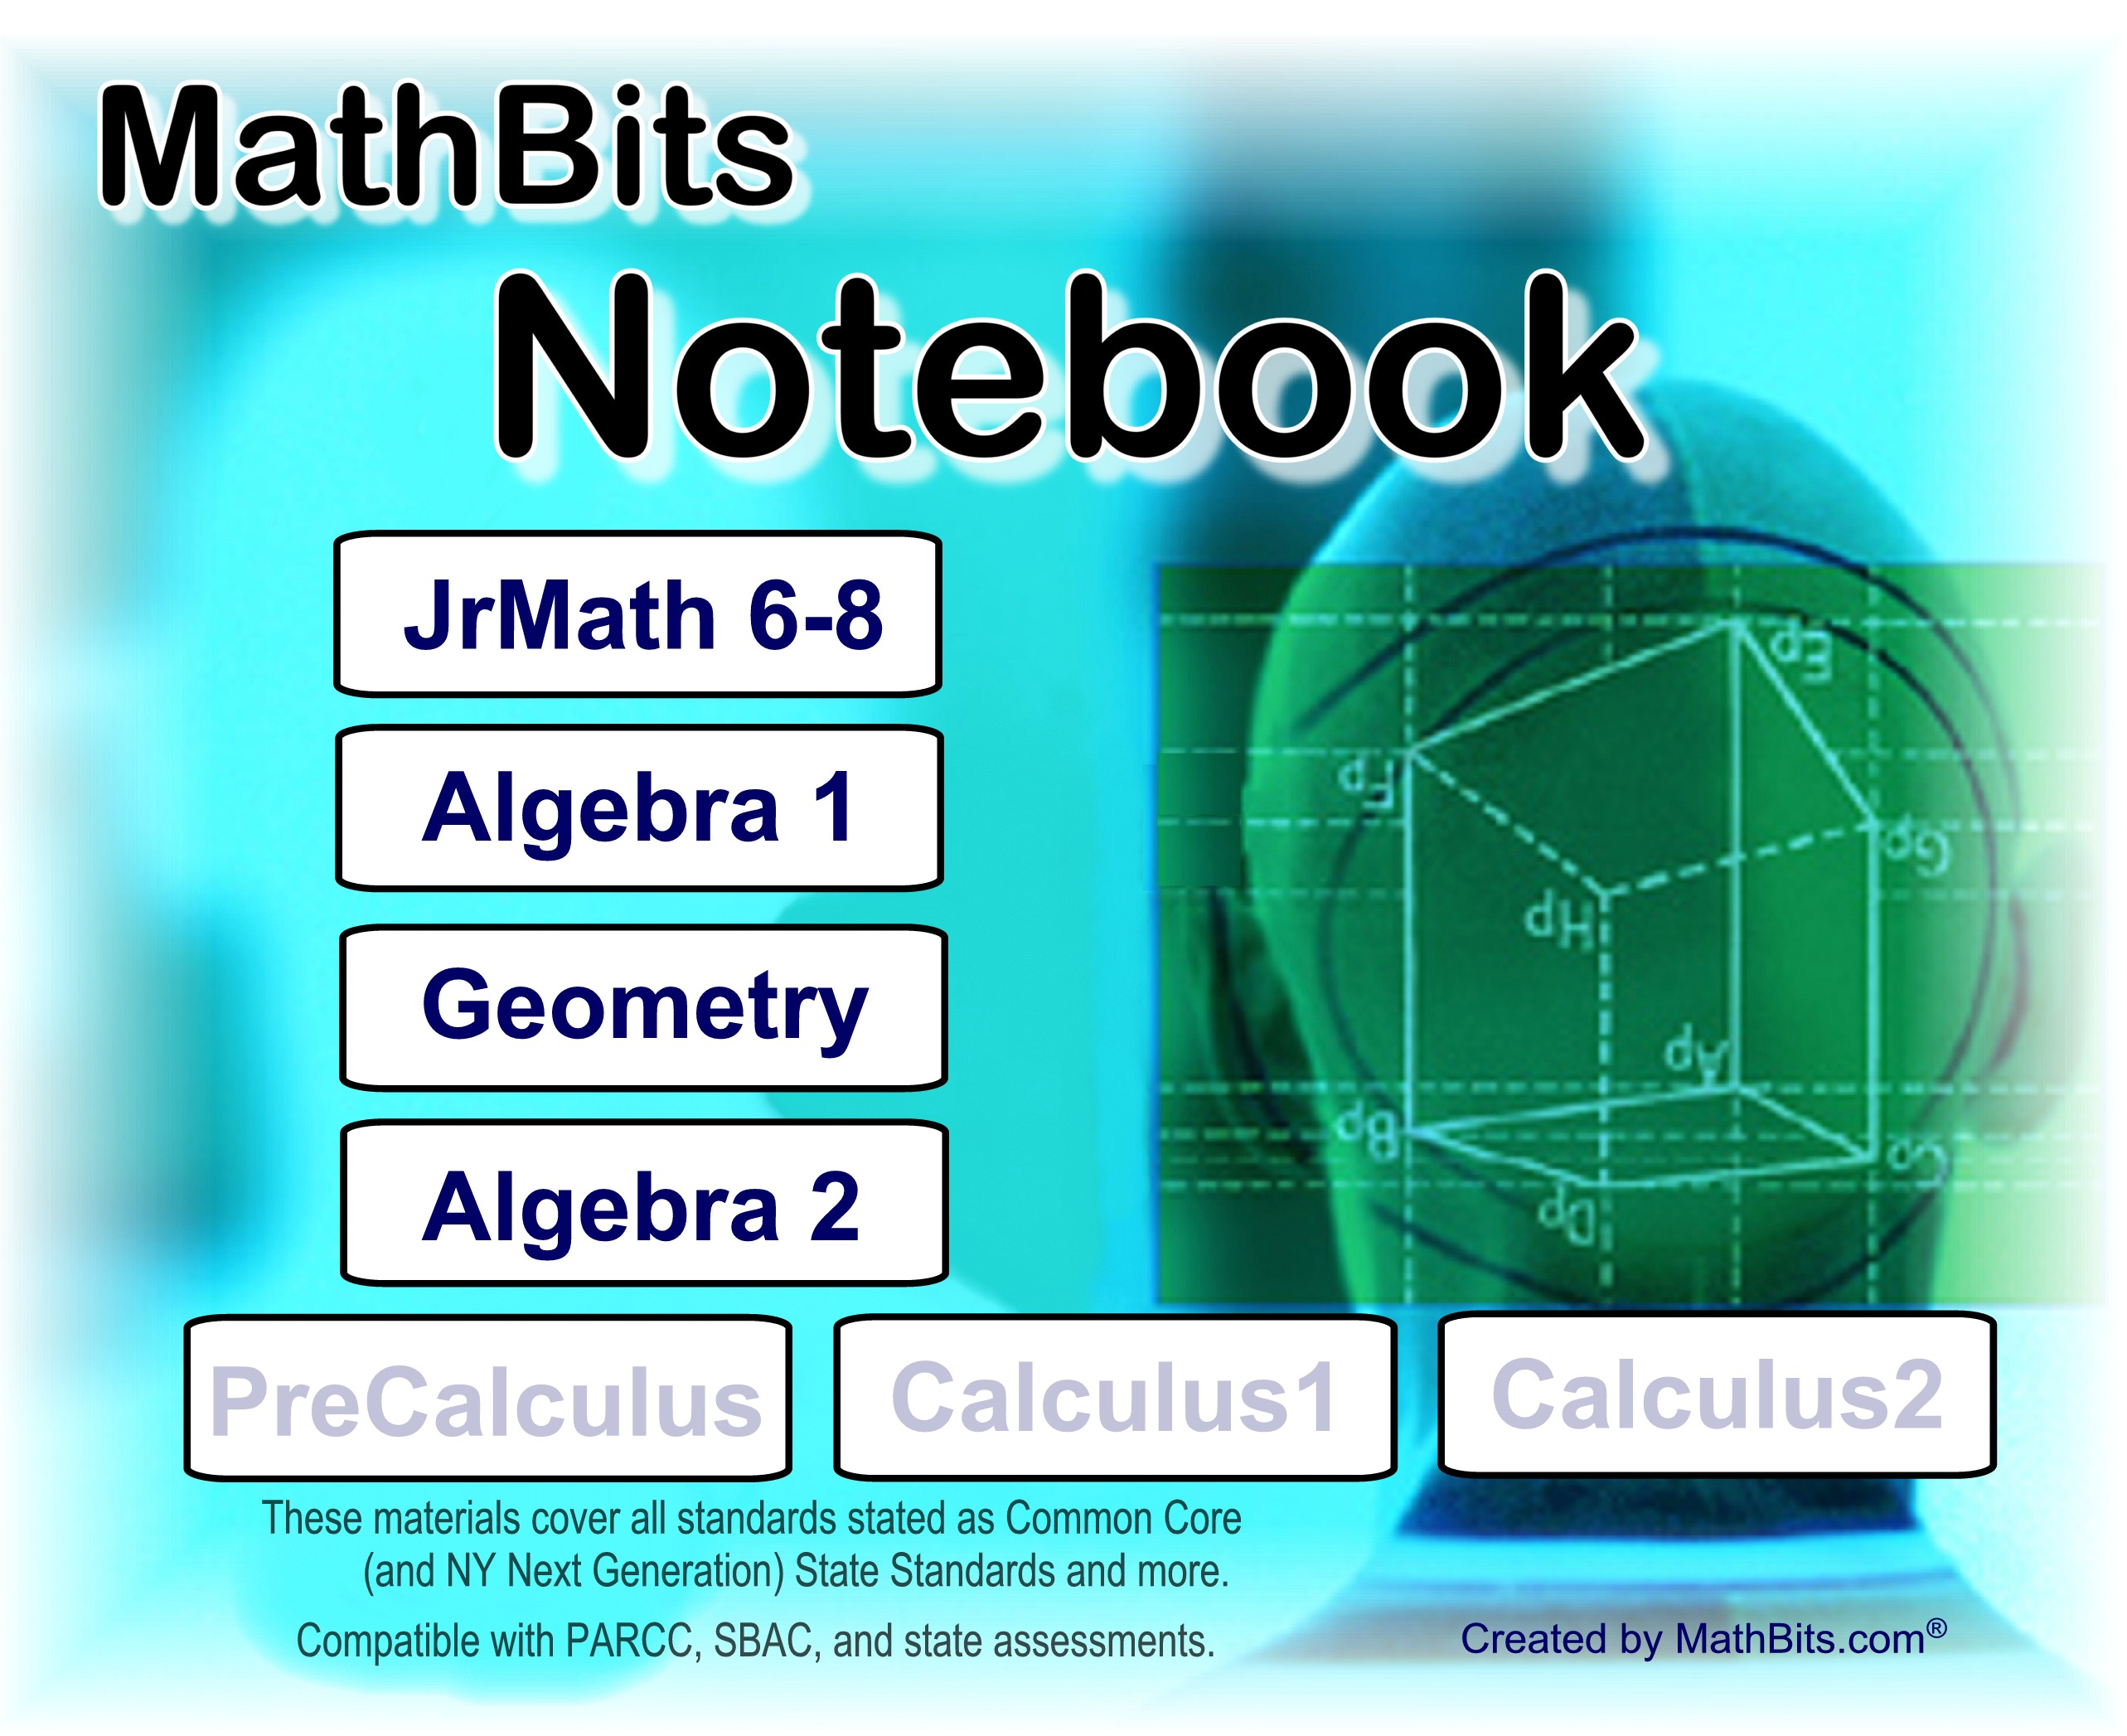 MathBitsNotebook - Common Core On-Line Study Resources for